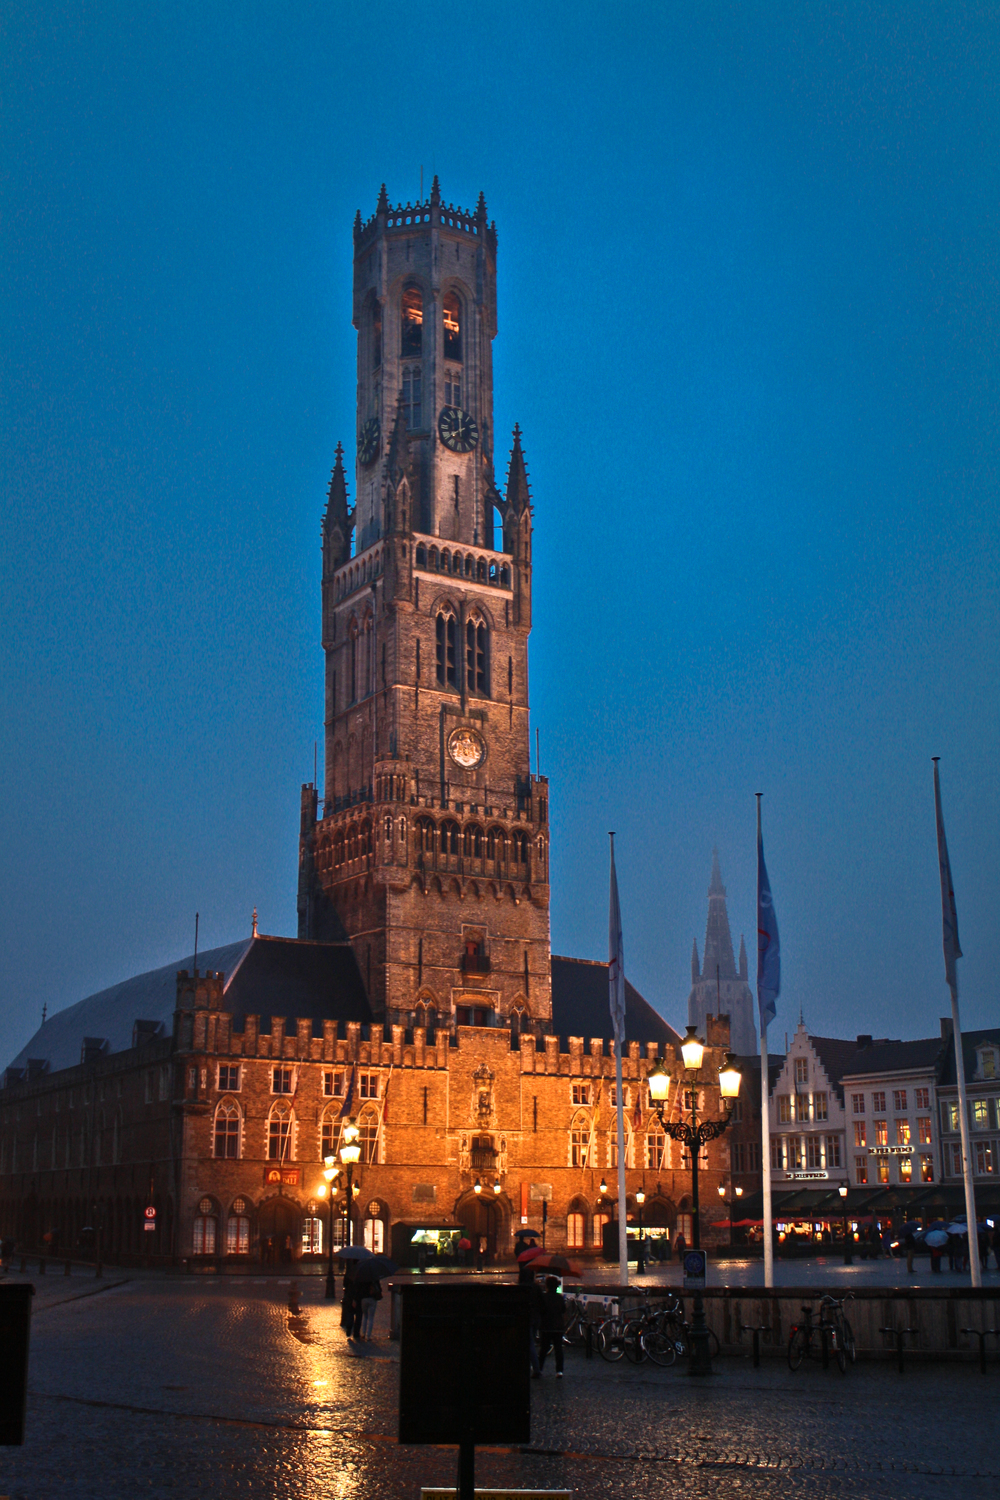 Night-time was beautiful in Bruges.